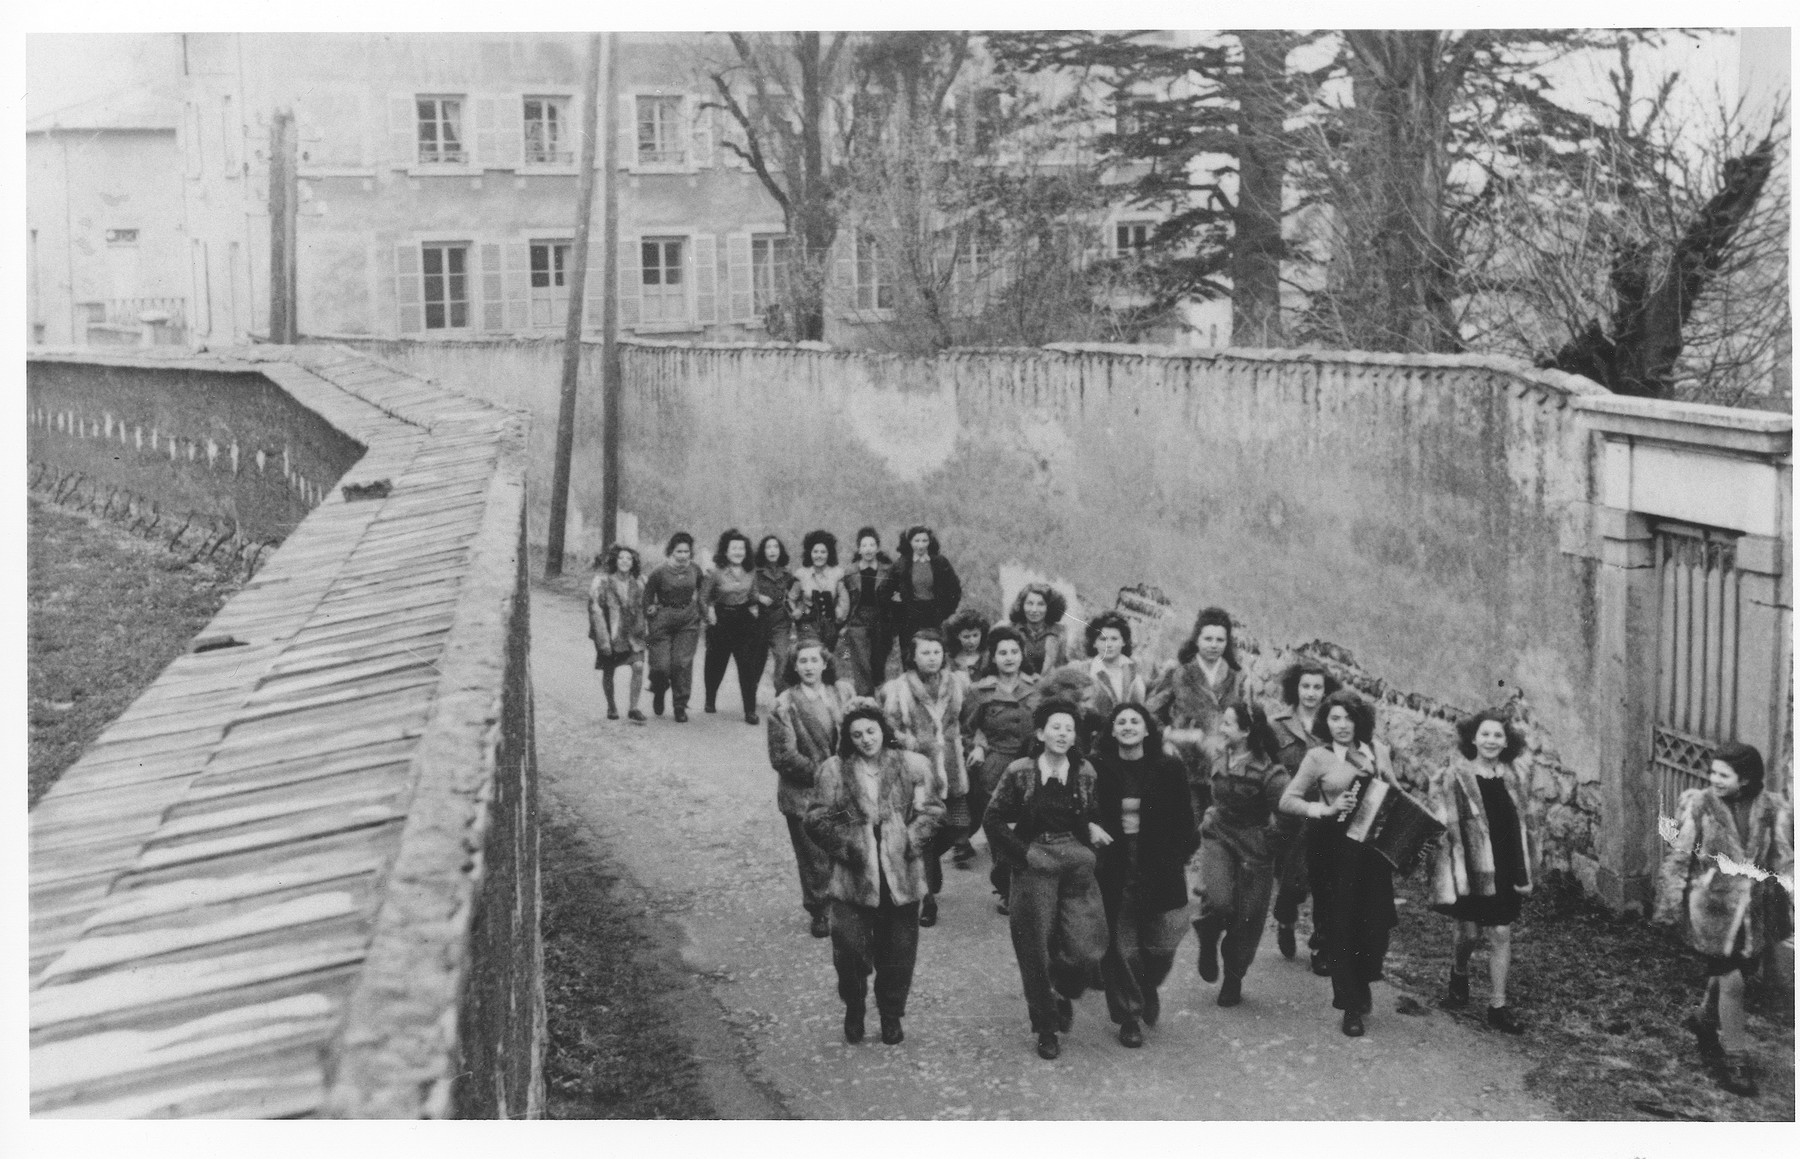 Teenage girls from the OSE children's home, Le Tremplin, walk along a narrow street wearing rabbit jackets sent to them from abroad.